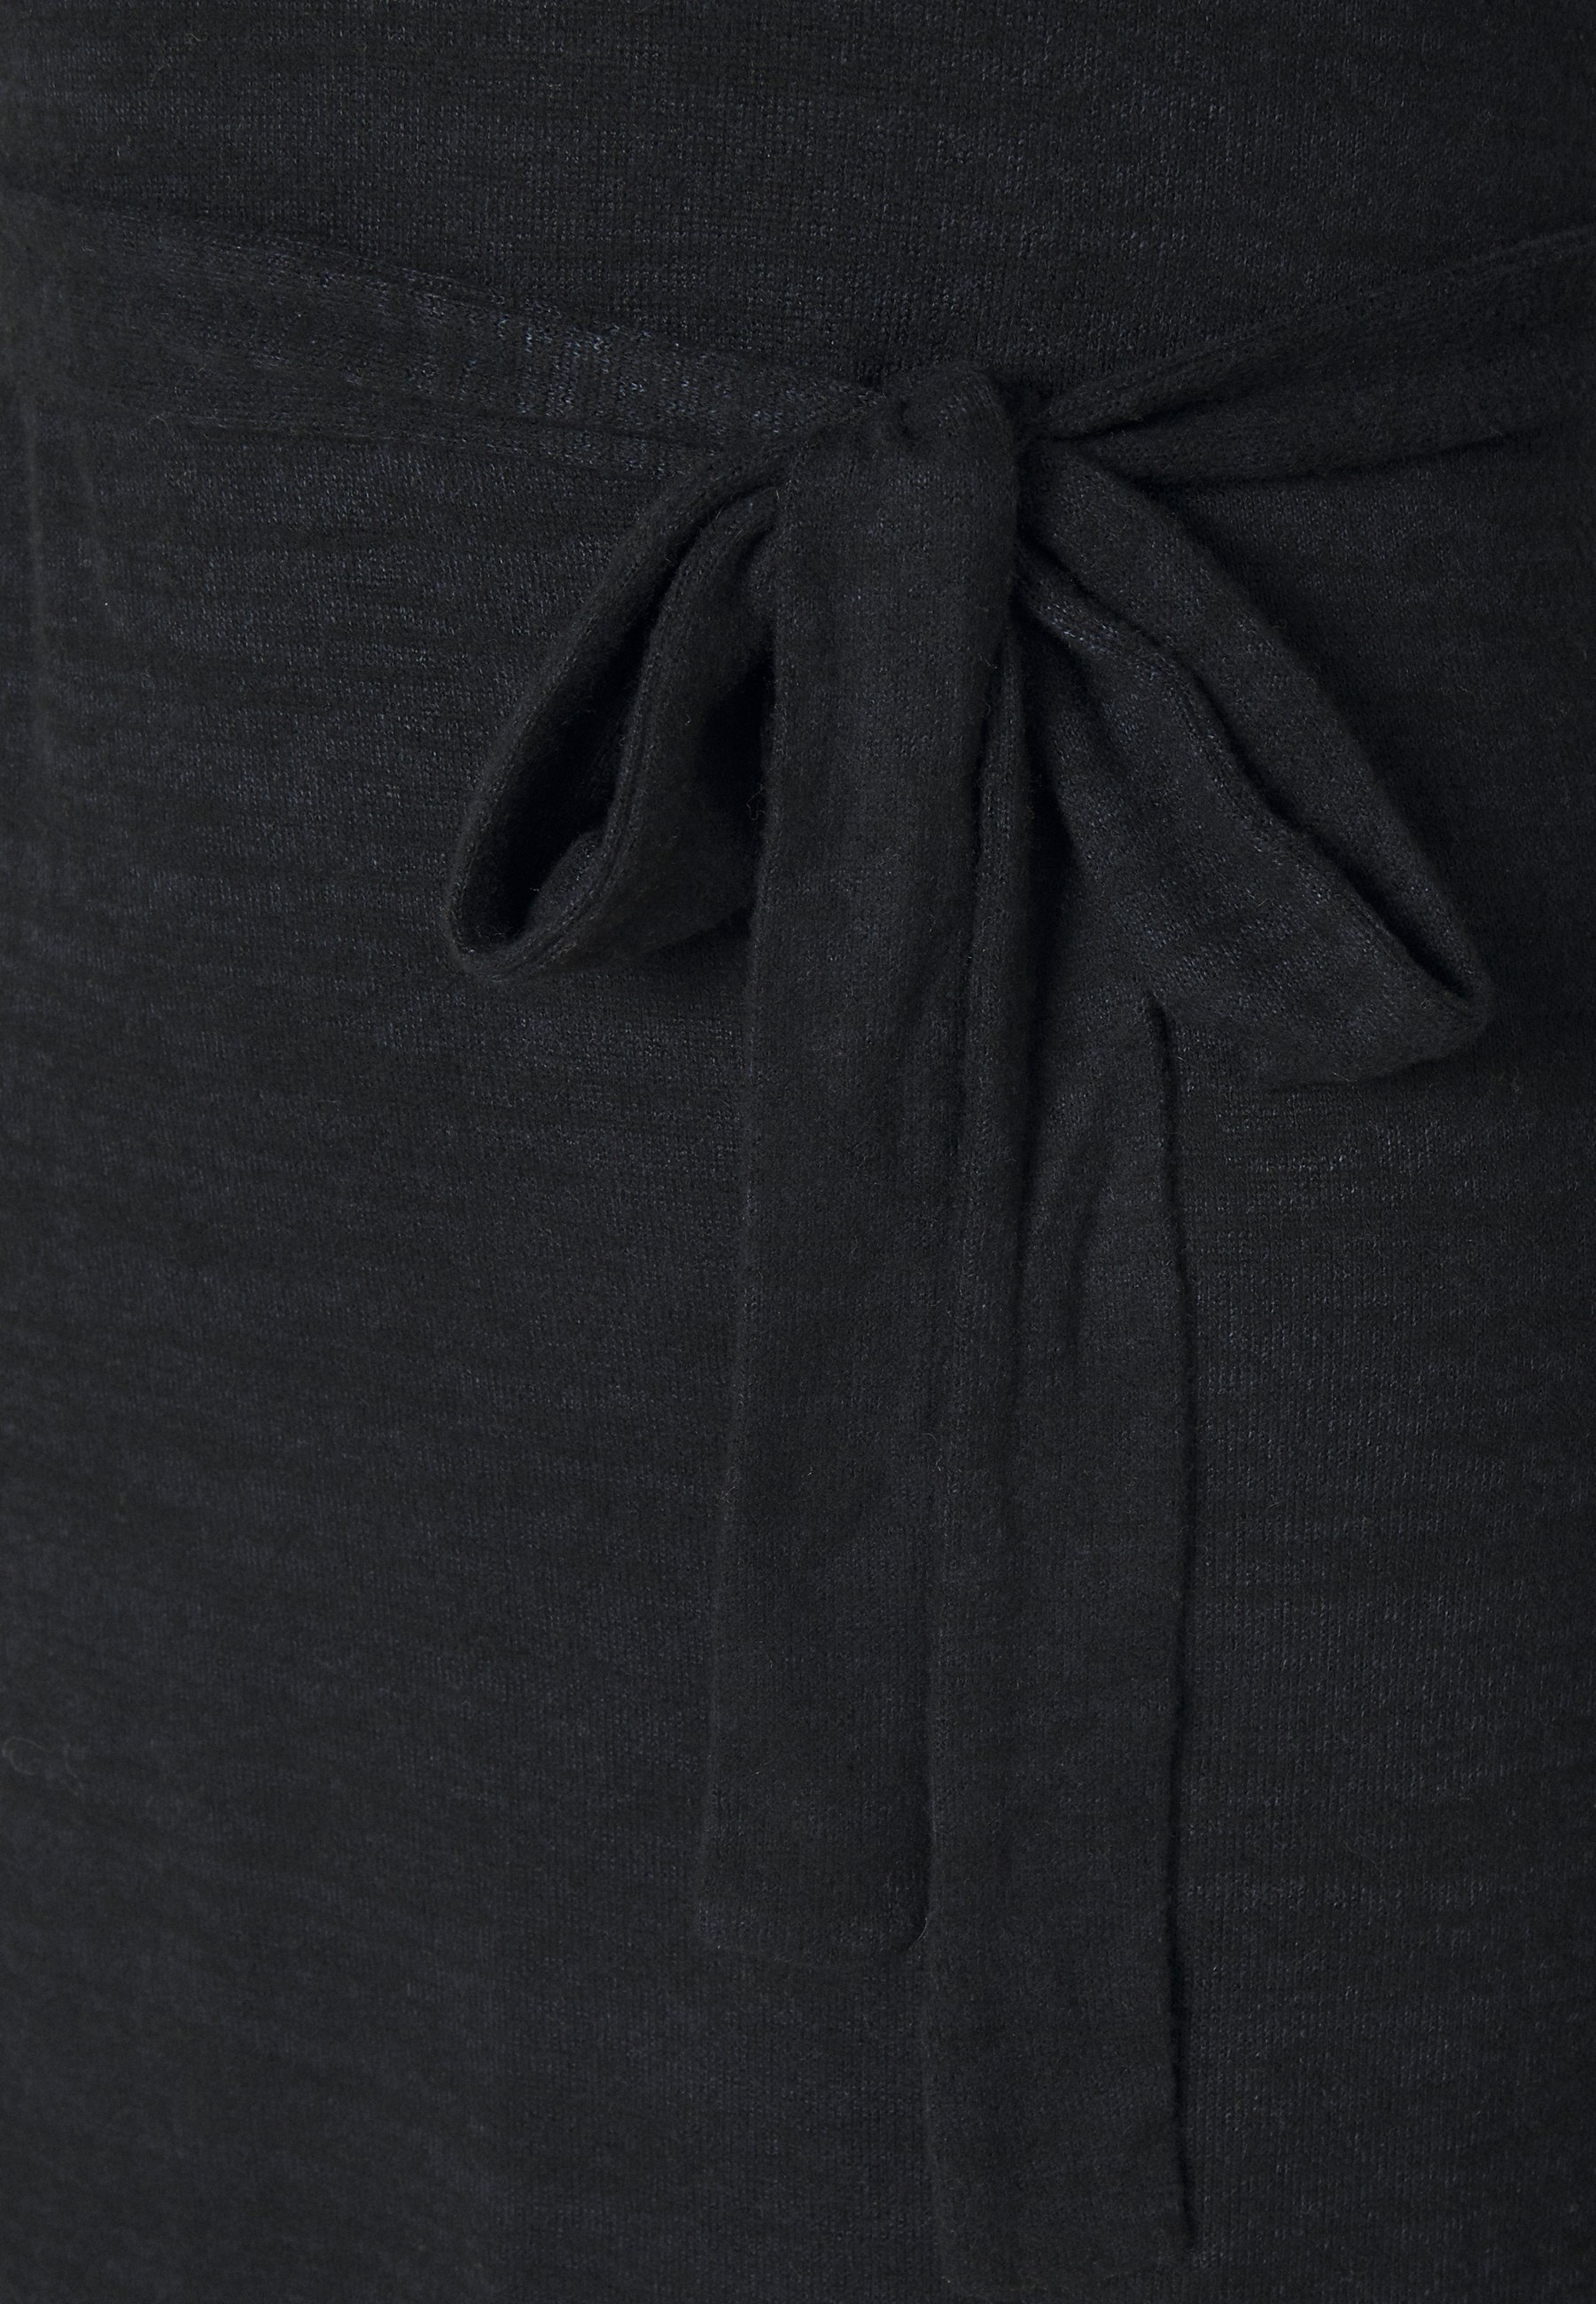 New New Arrival Women's Clothing Abercrombie & Fitch BELTED COZY DRESS Jumper dress black 51Fk8boO9 q71gBUp6F